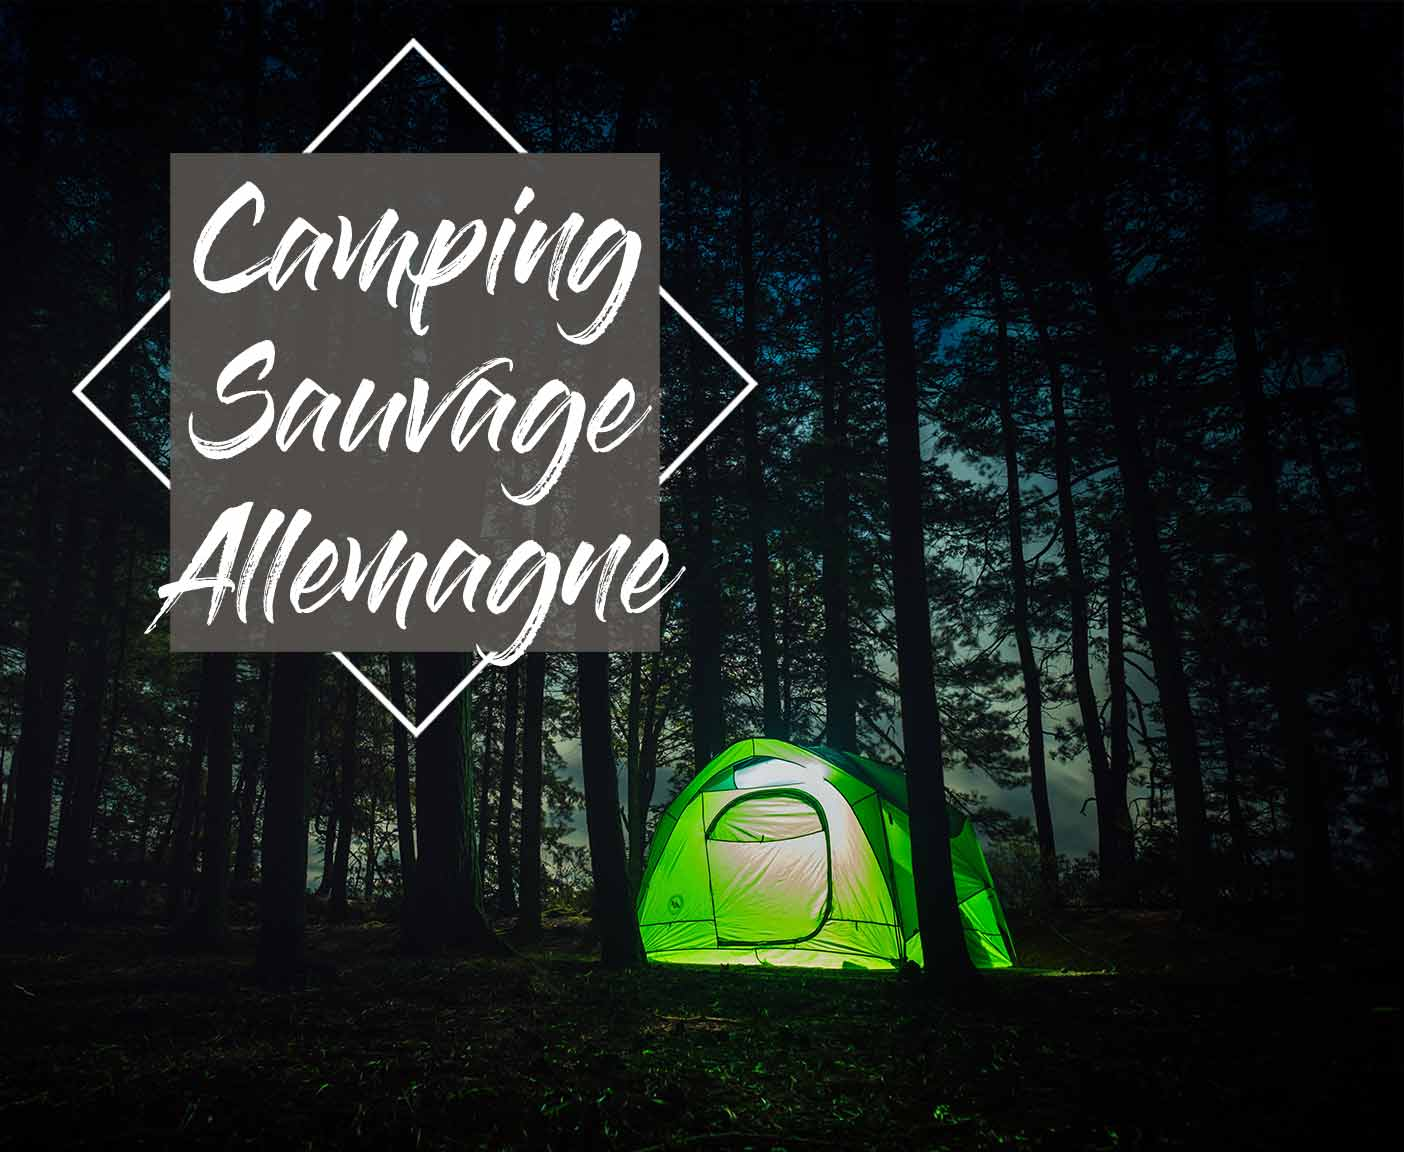 camping-sauvage-regles-allemagne-roadtrip-vanlife-europe